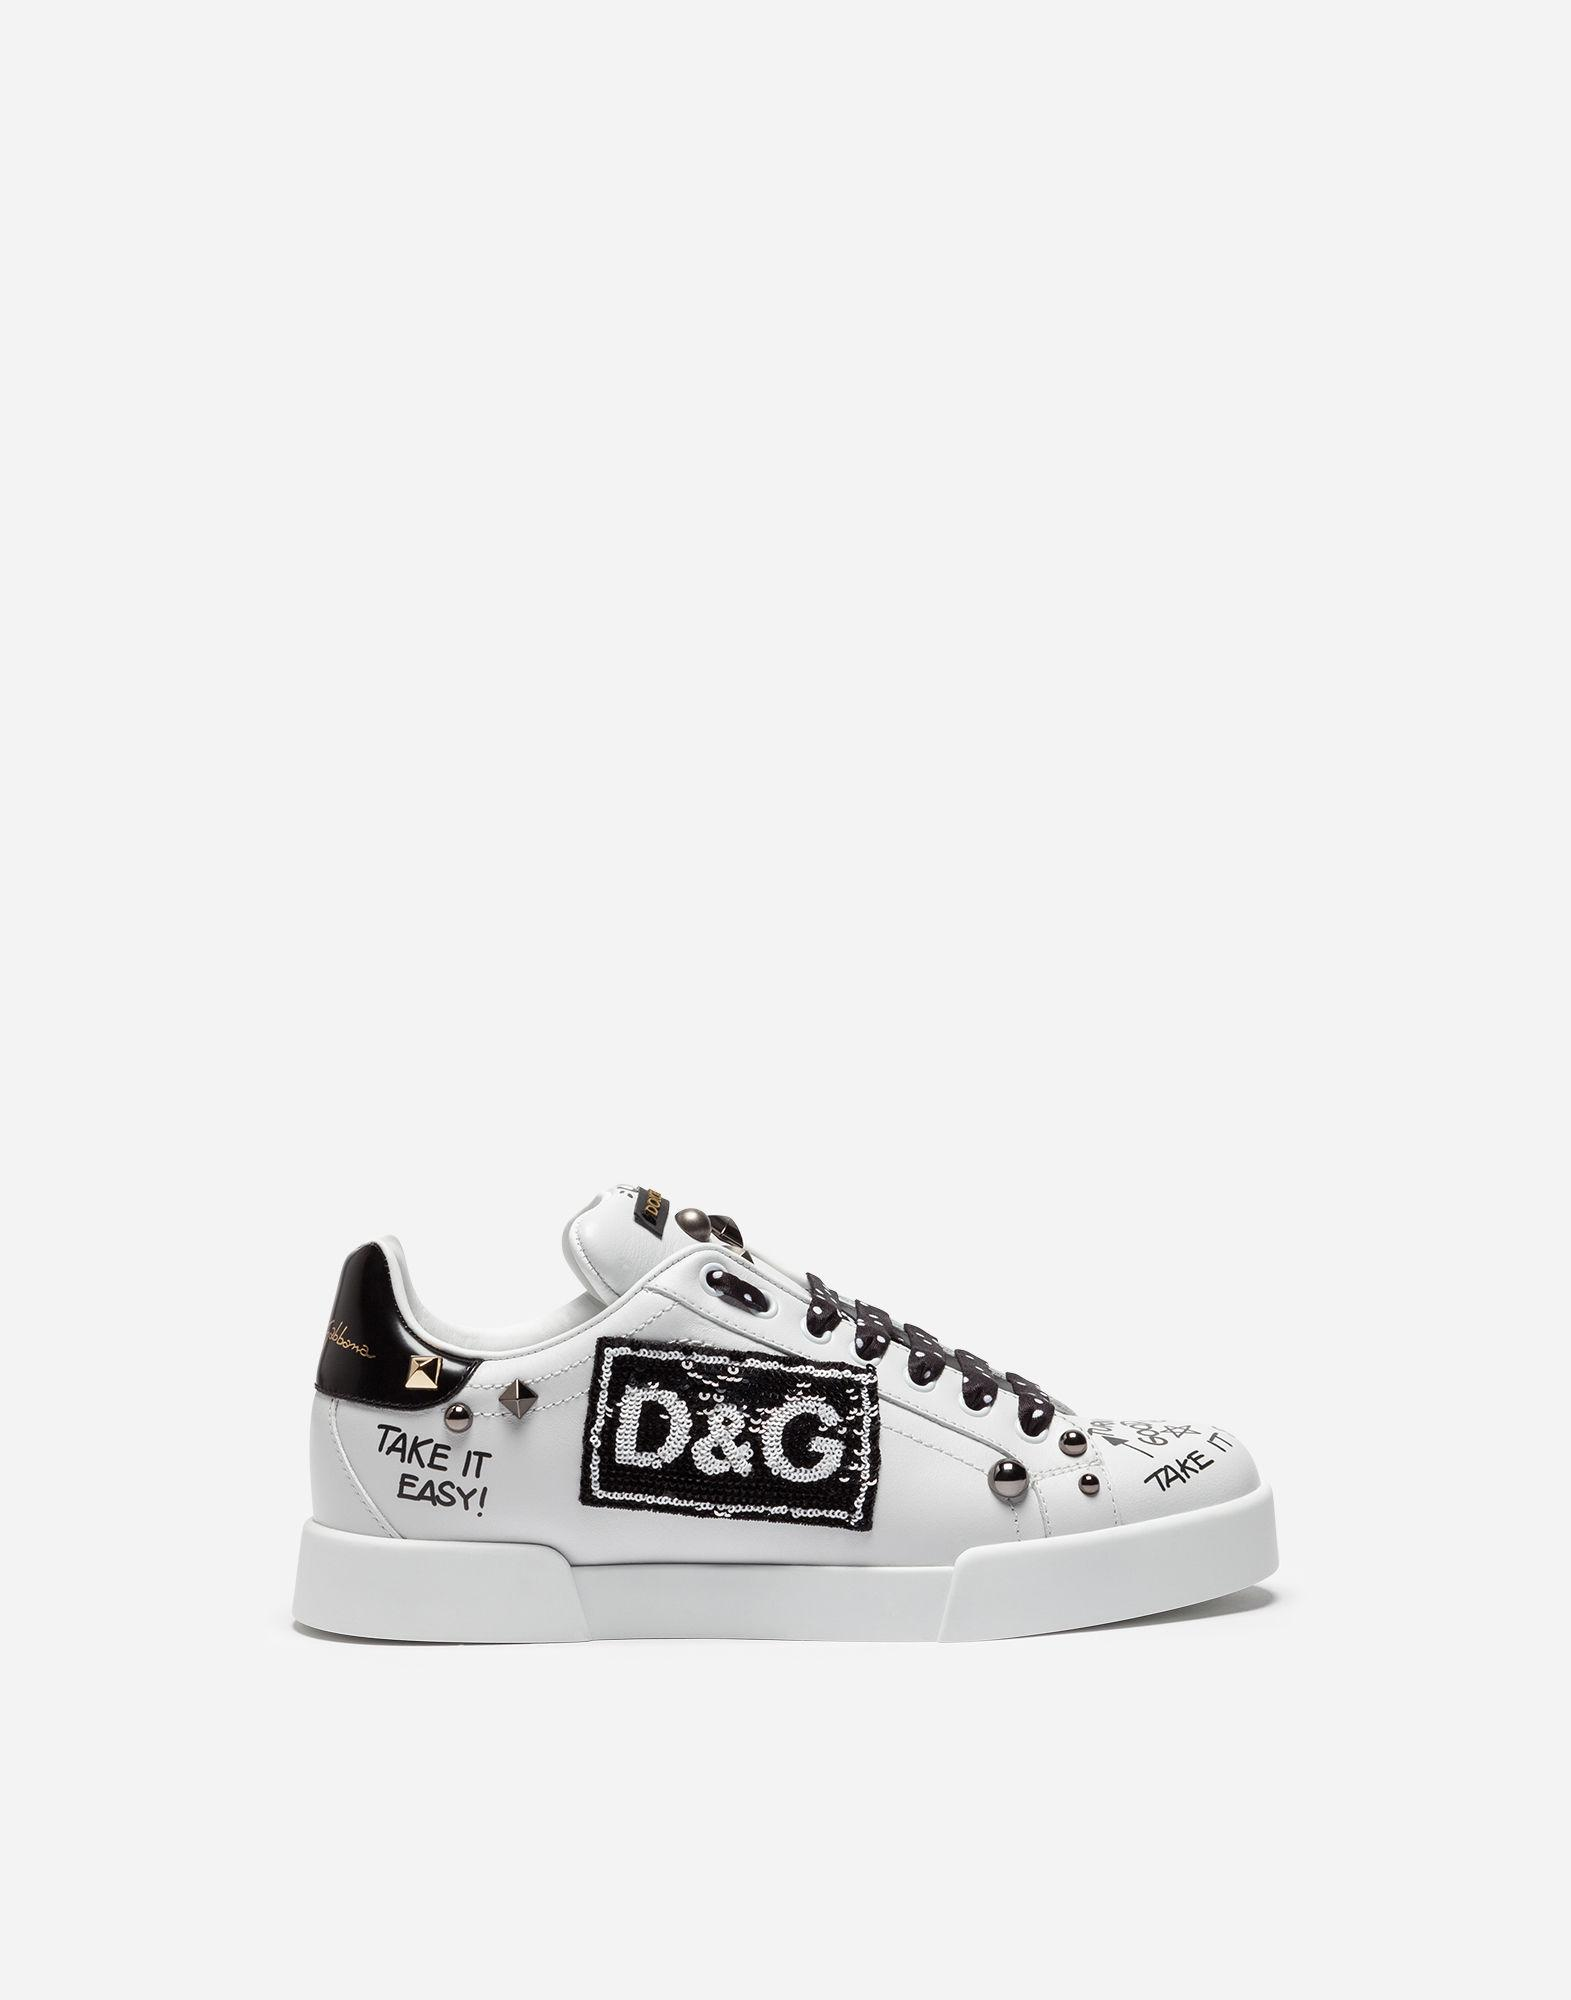 Dolce & Gabbana Portofino embroidered sneakers